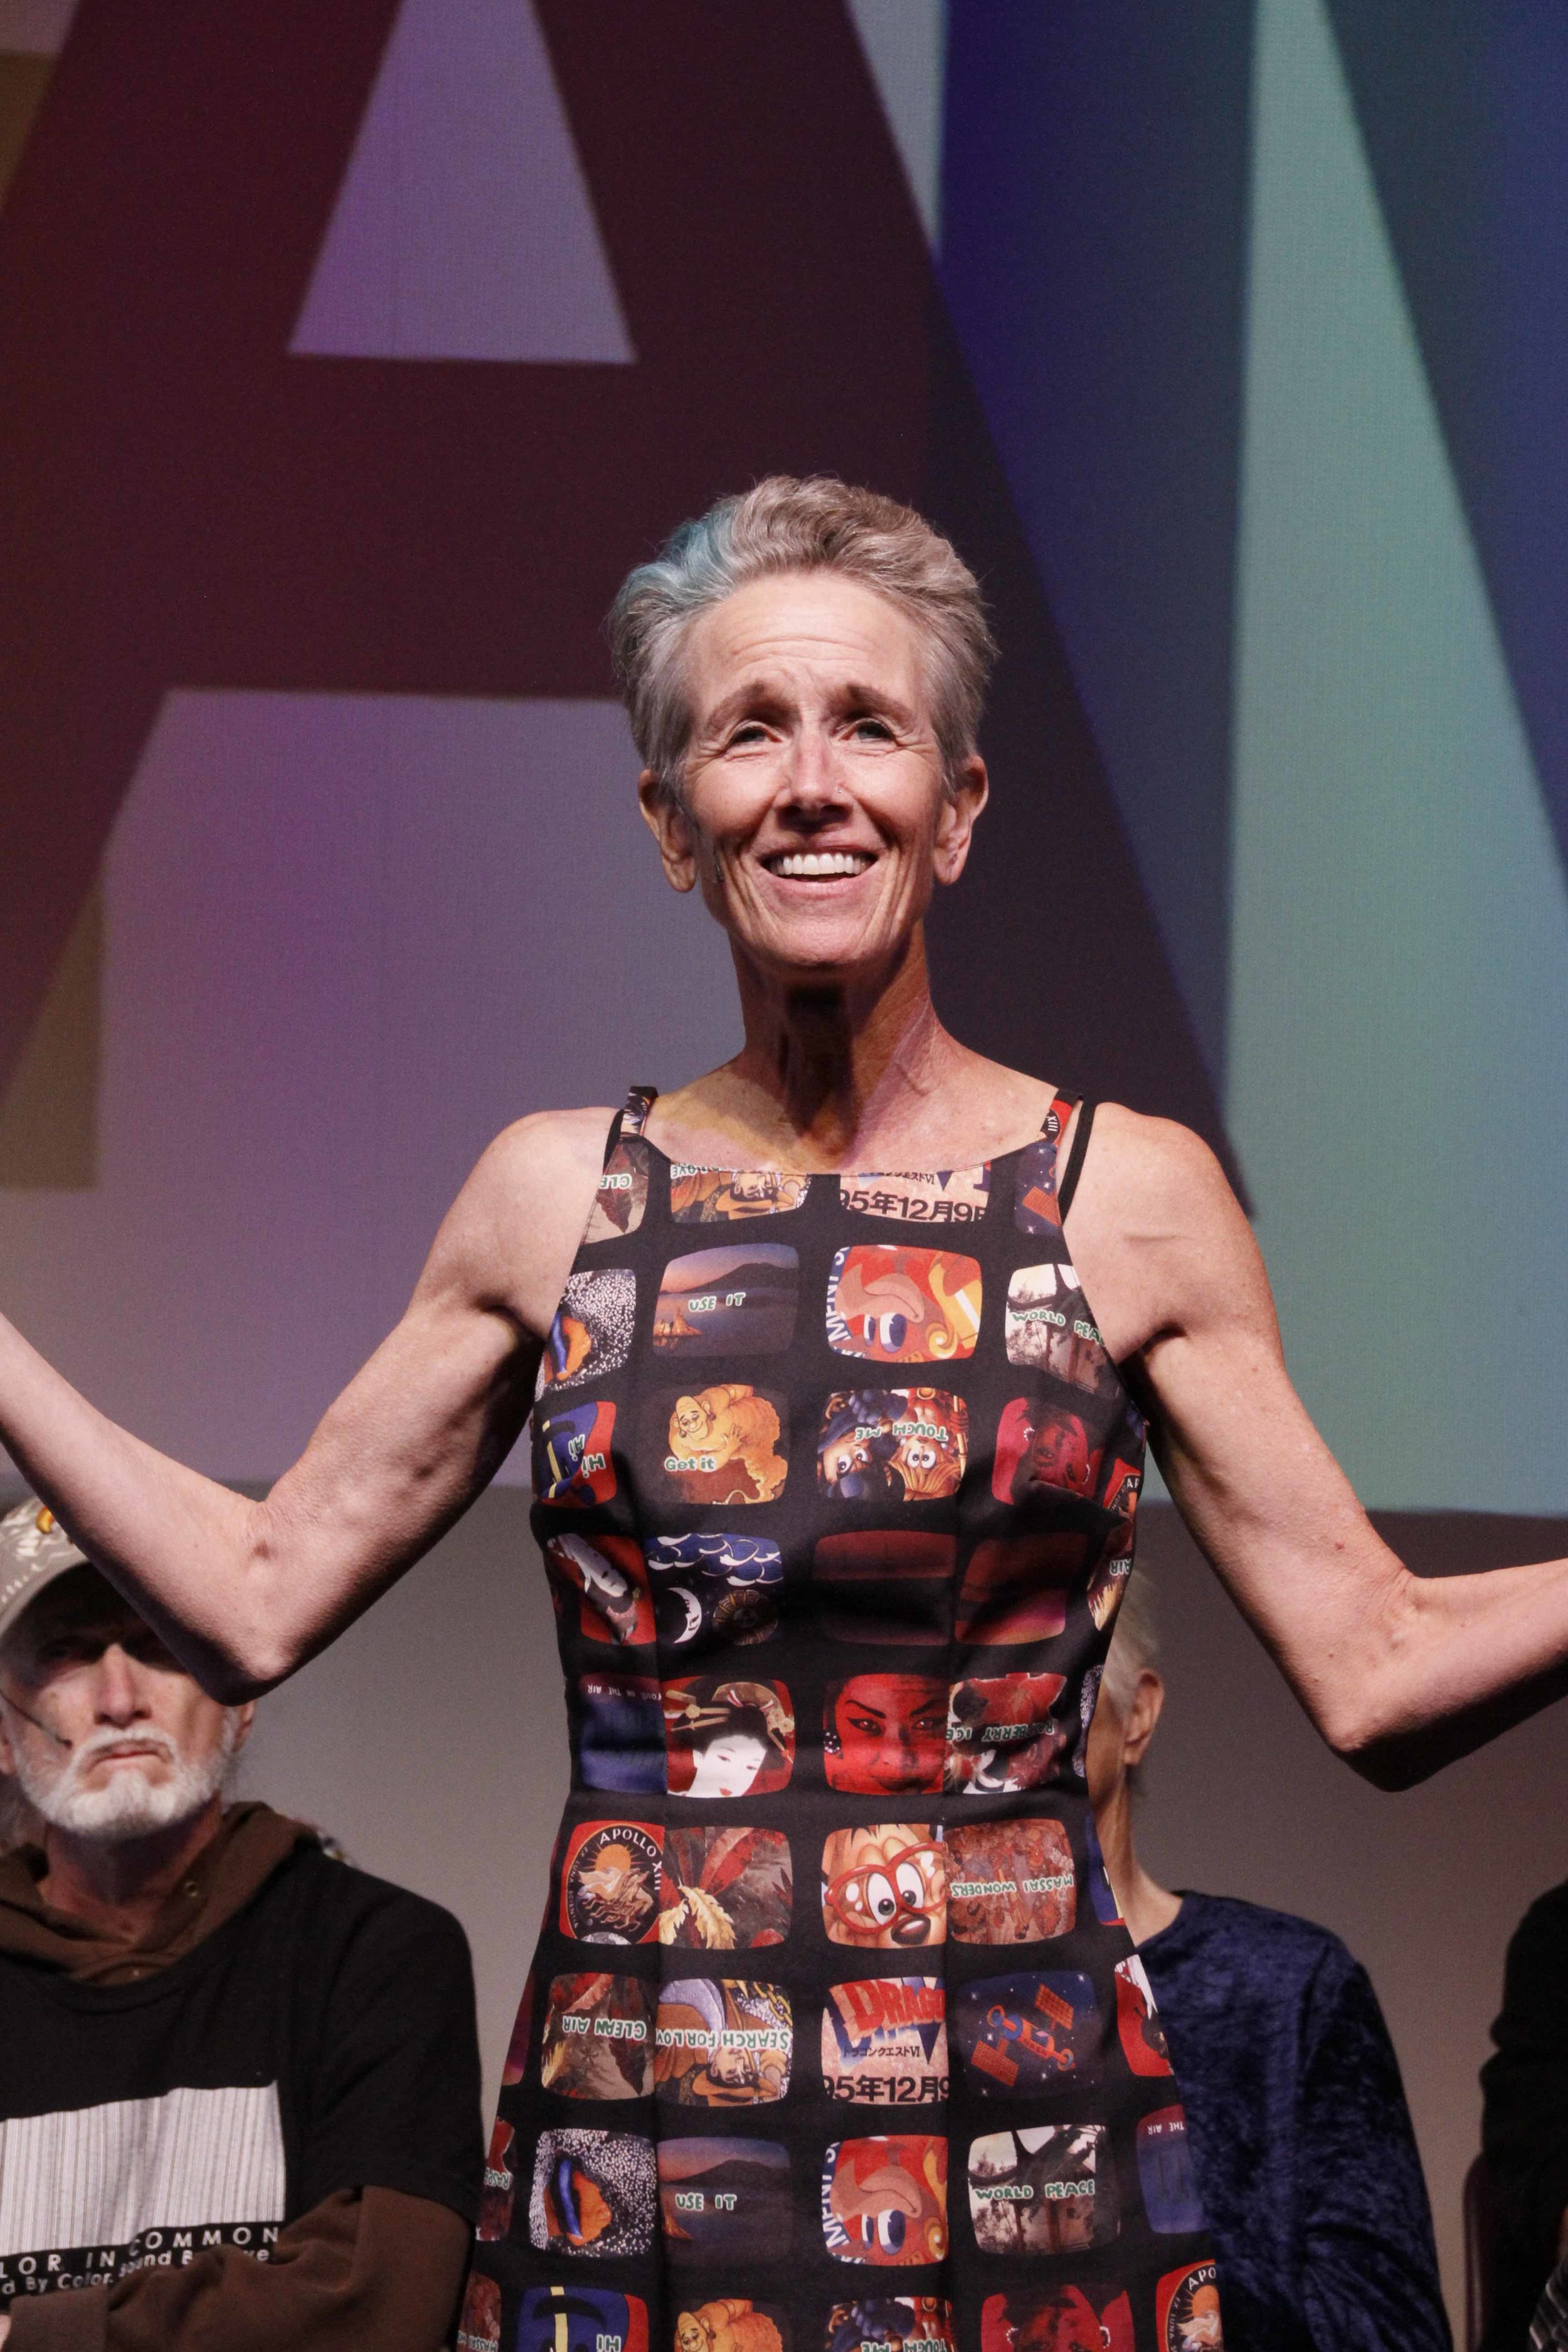 June 22-23, 2018 - New Stages presents Heroic Lives - Performer Lauren Peterson tells her story, photo credit Sashi Peterson.jpeg